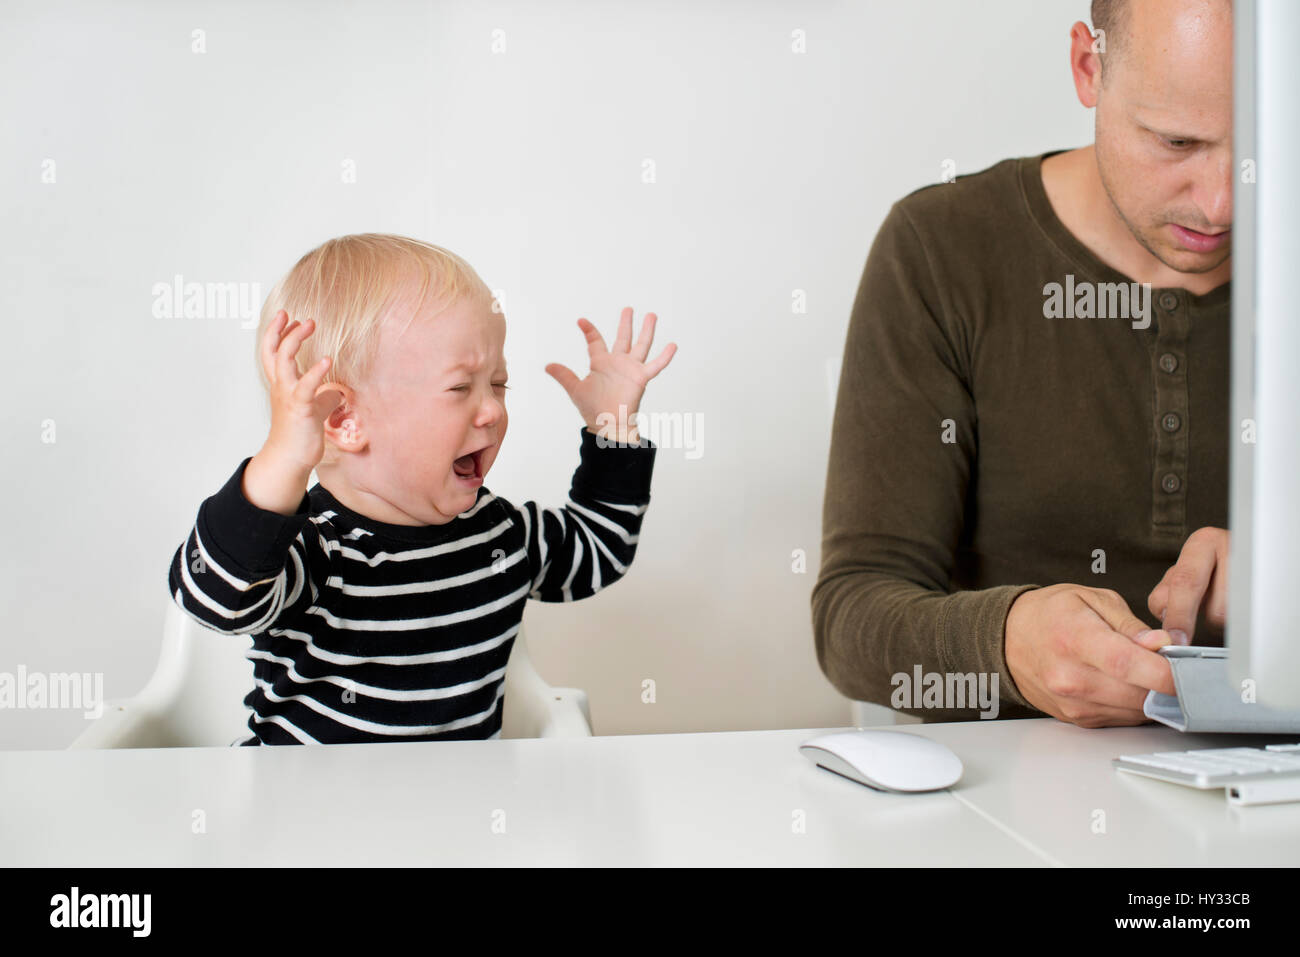 Sweden, Stay at home dad using tablet, son (12-17 months) throwing tantrums - Stock Image